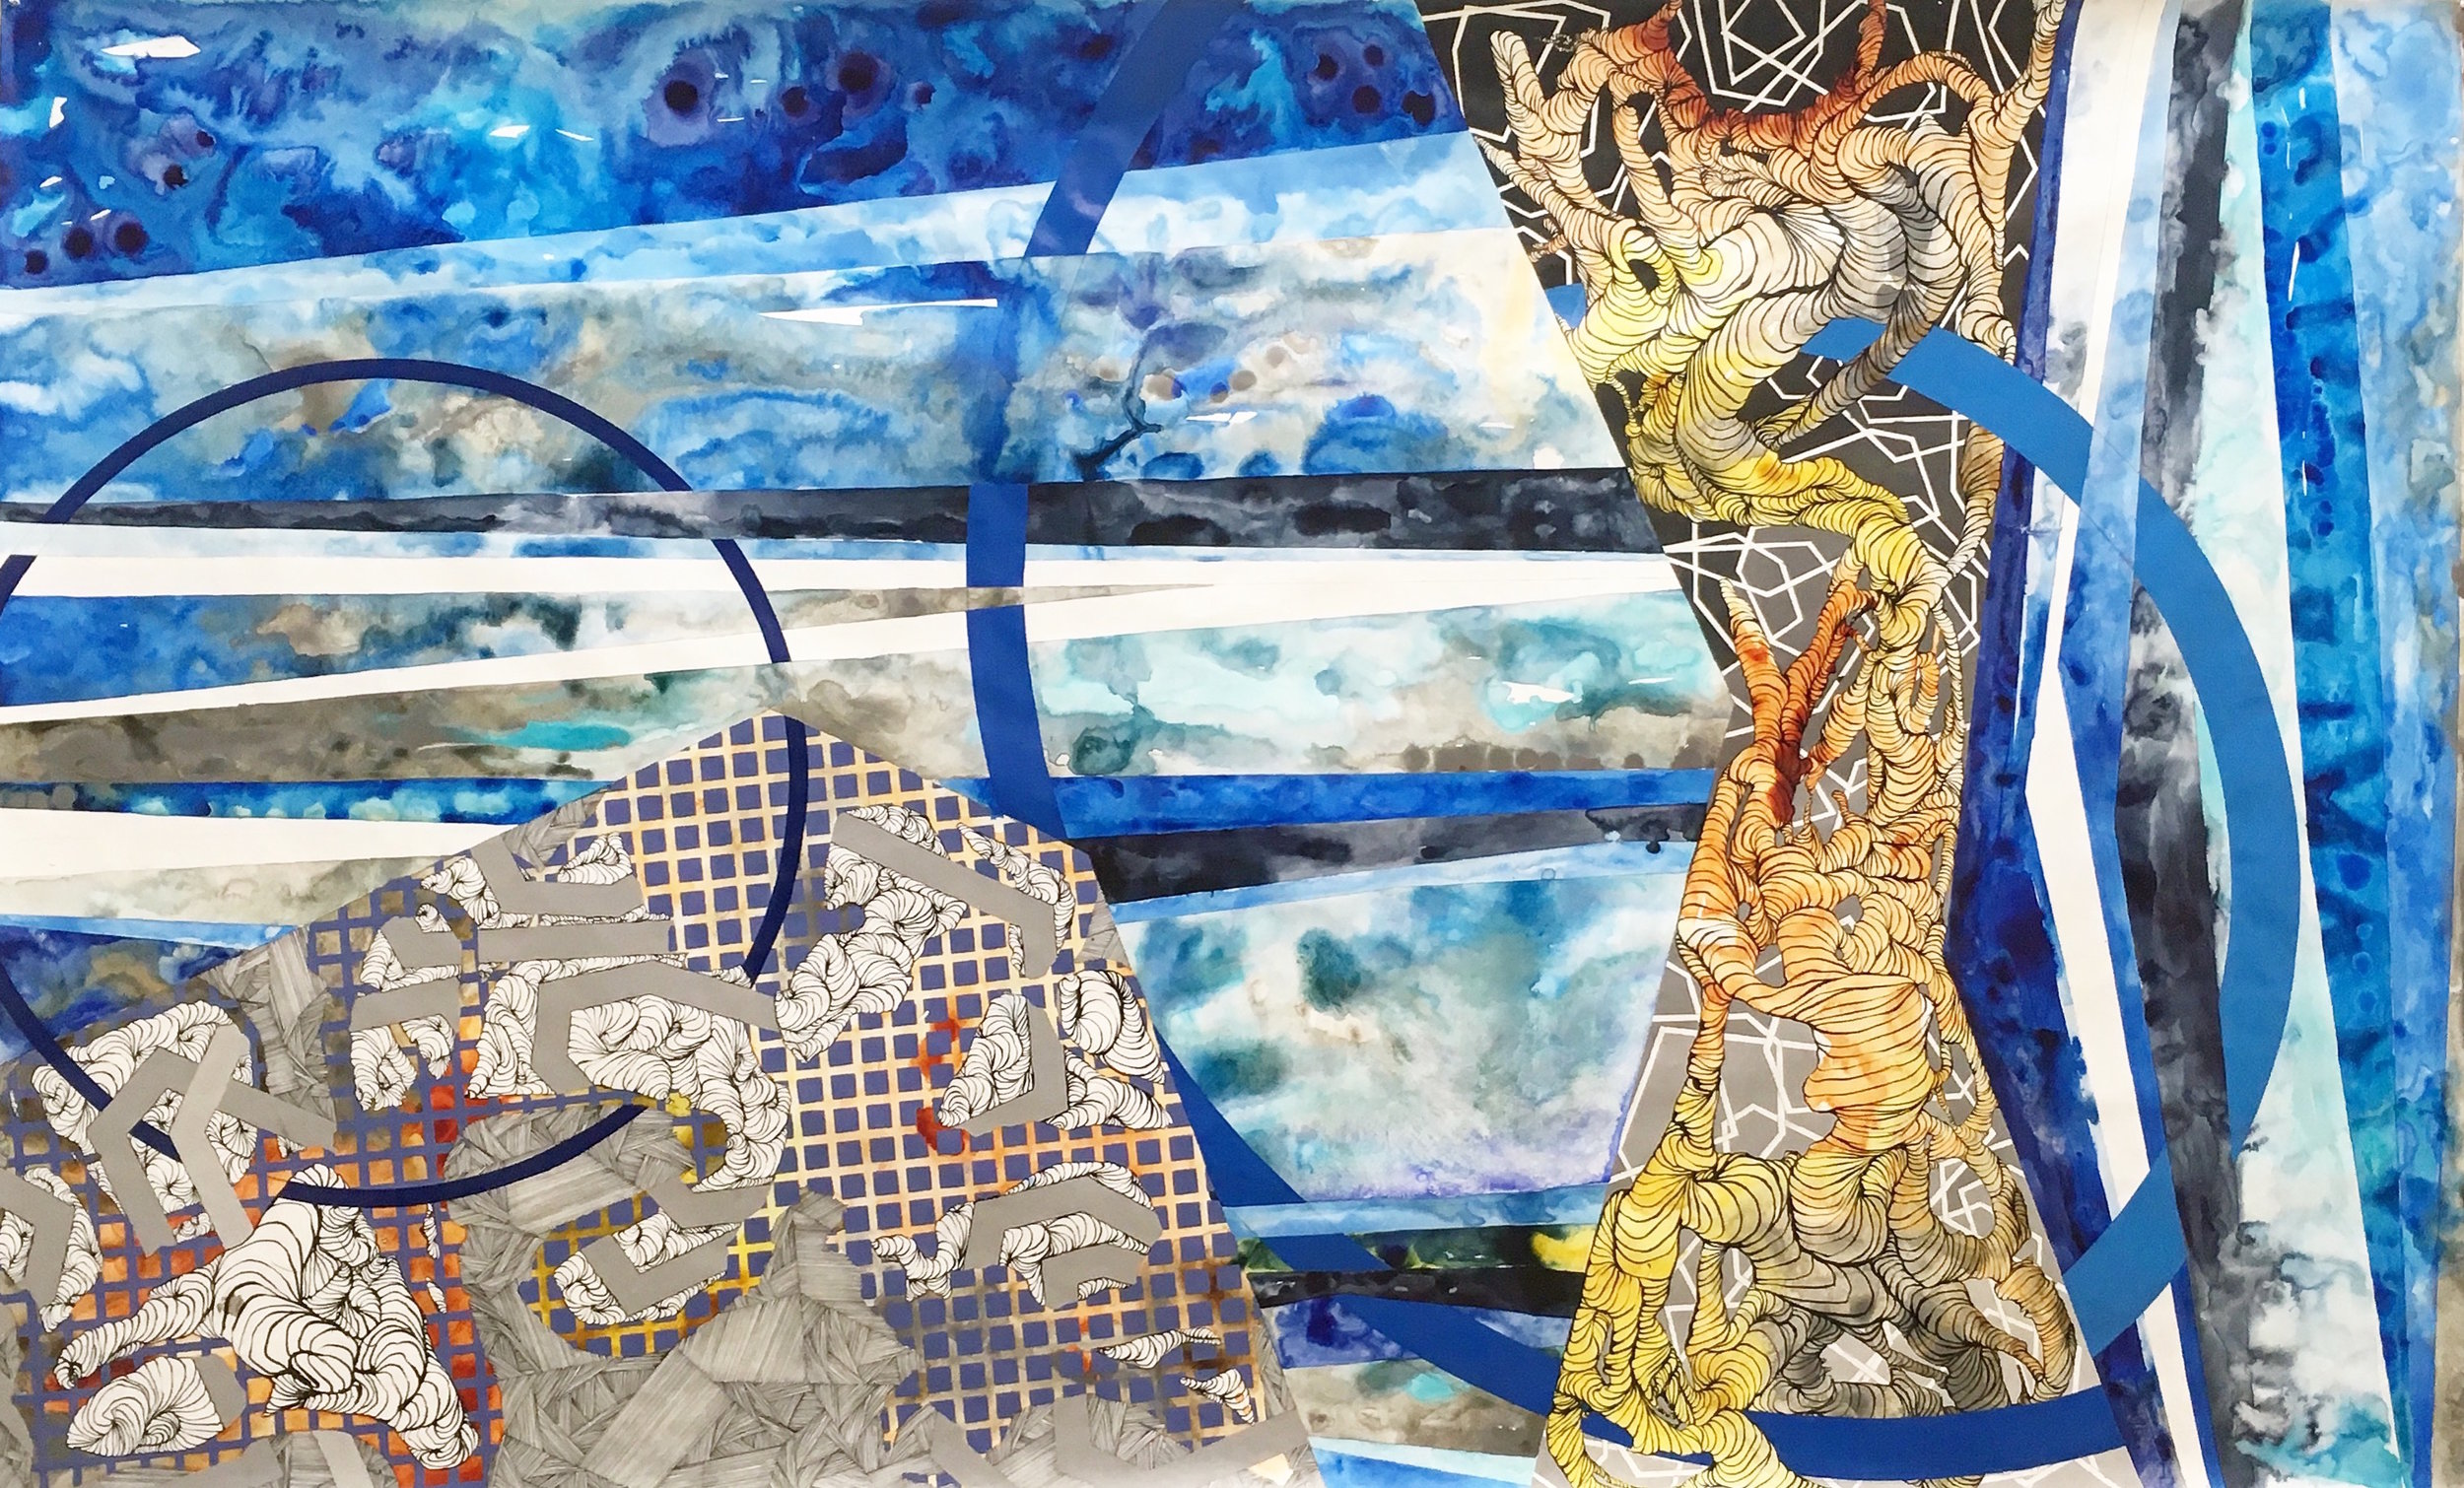 Geography of Horizons and Planes II. Highflown Acrylic, gouache and mixed media on tyvek. 103in x 58in. 2017